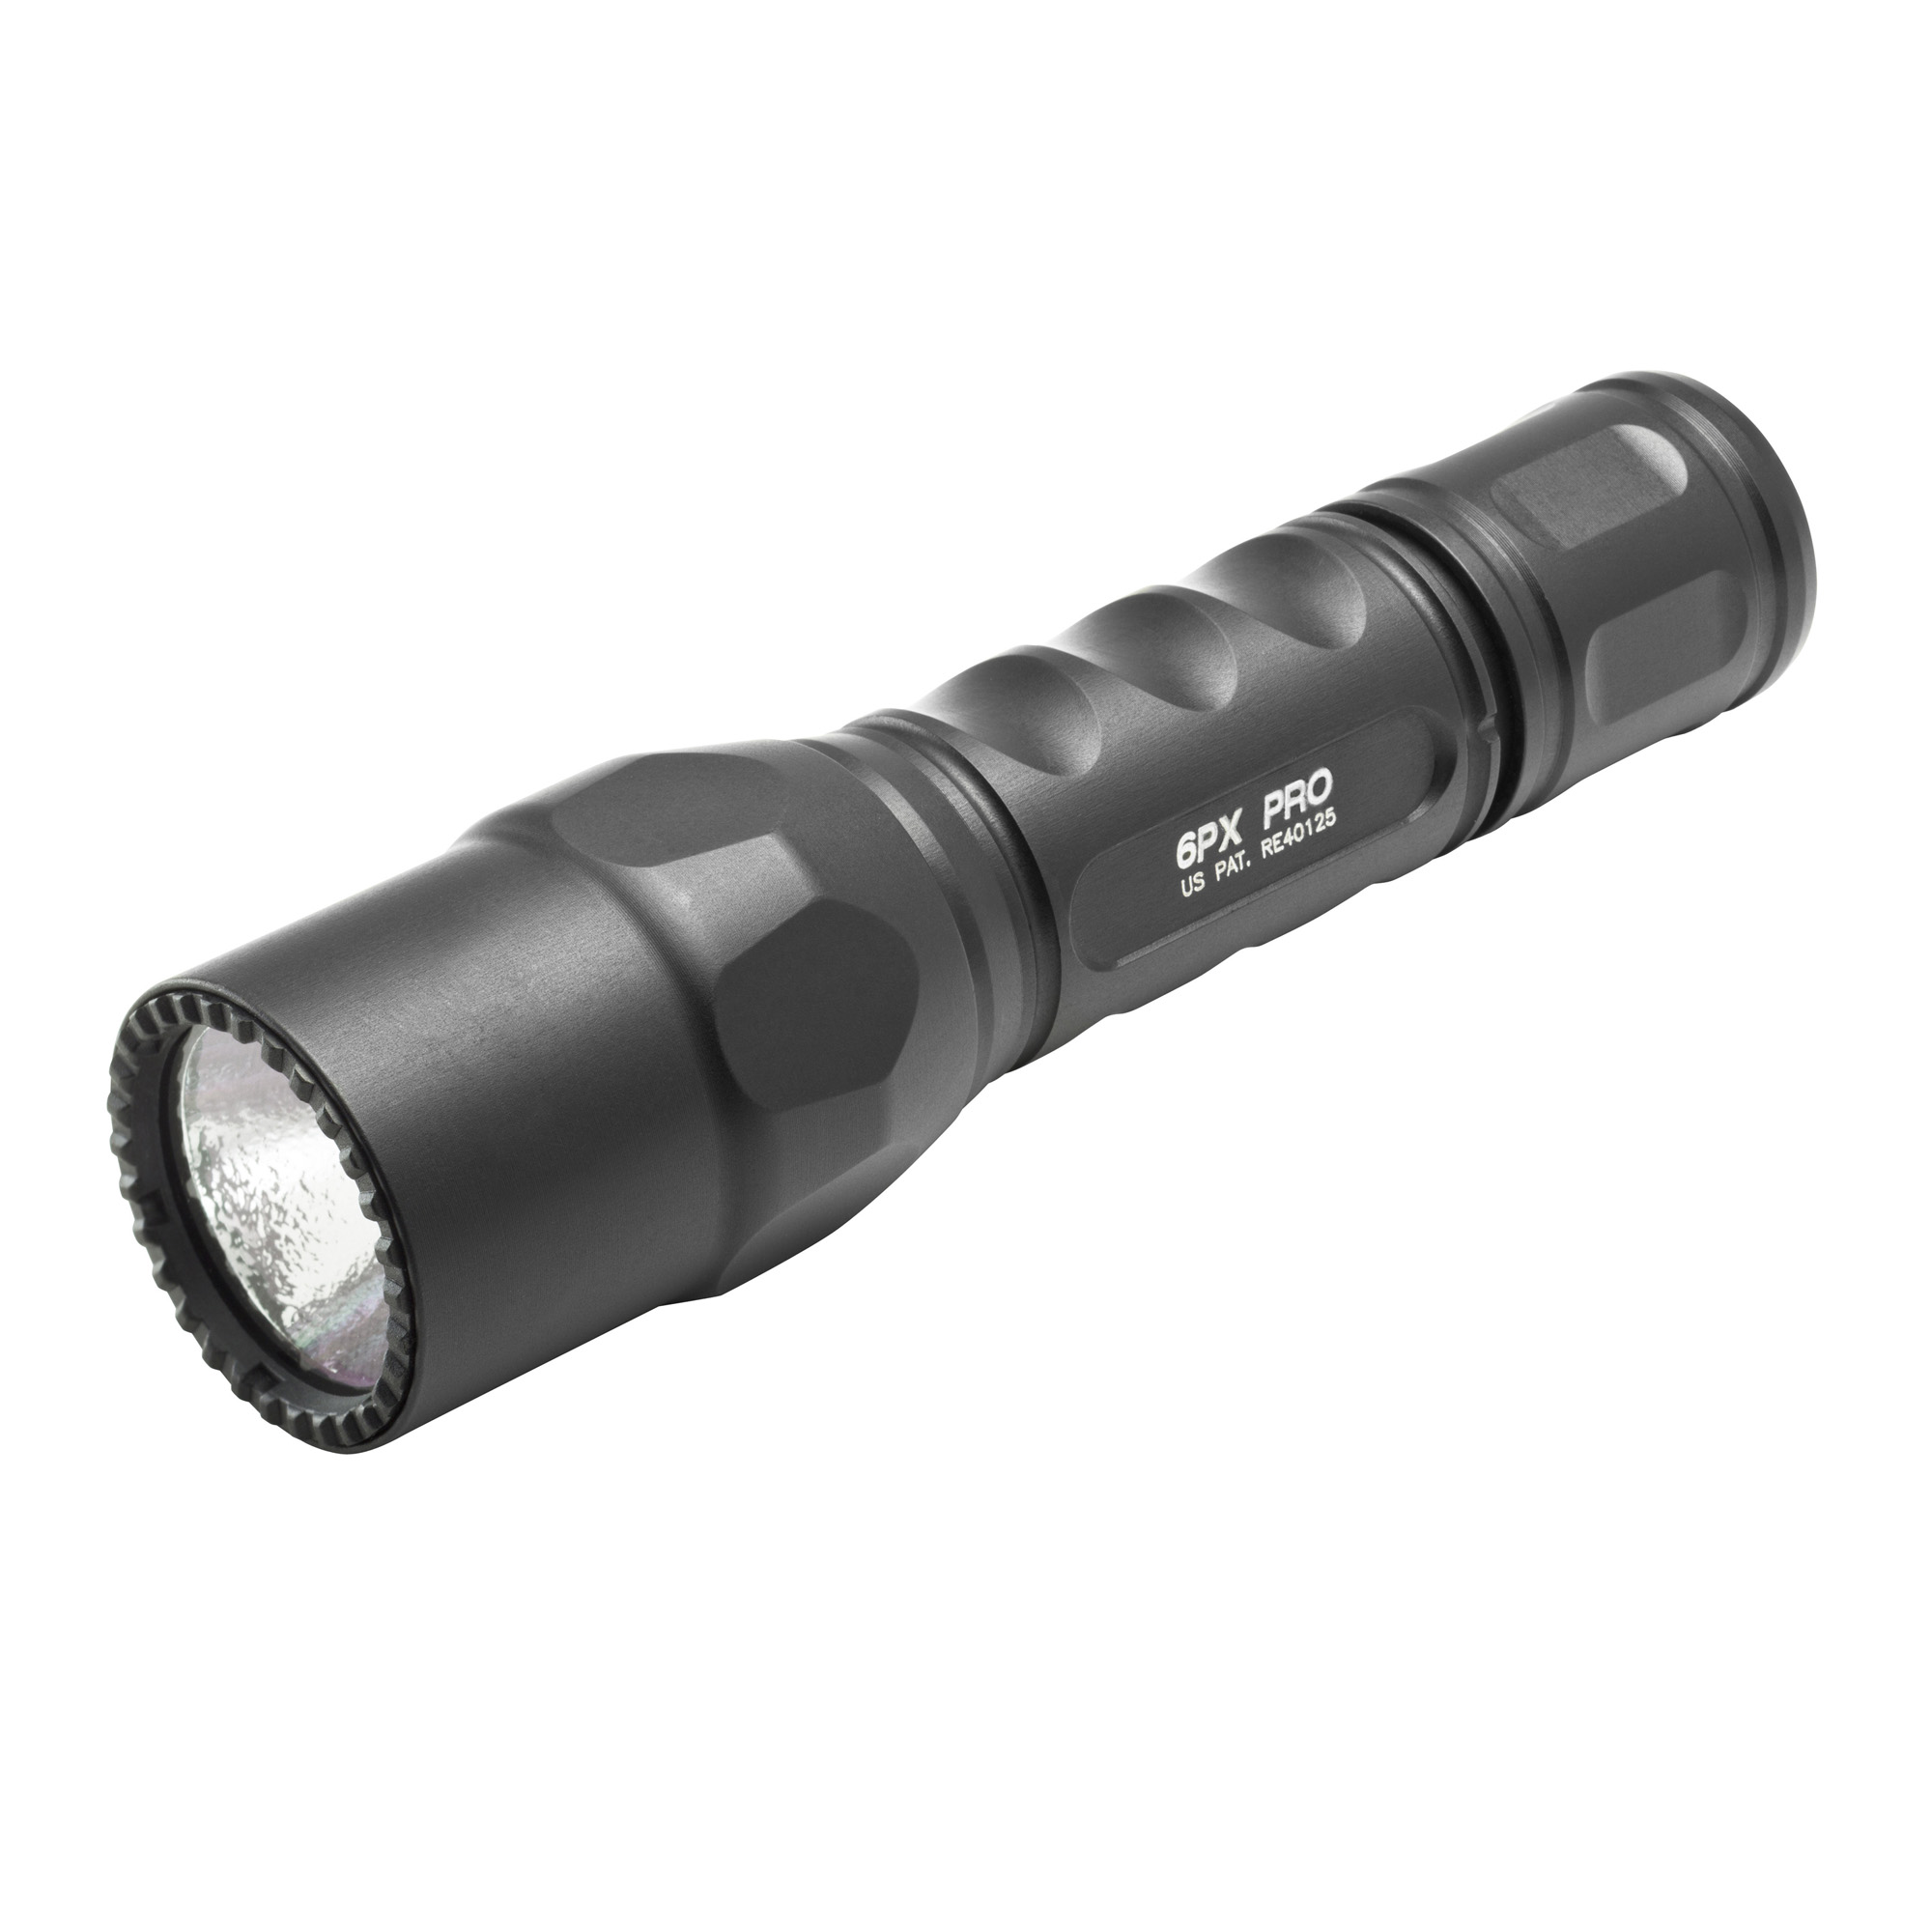 """The 6PX Pro's high-efficiency LED-virtually immune to failure since there's no filament to burn out or break-provides two light output levels: a brilliant"""" penetrating"""" perfectly pre-focused 600-lumen beam"""" and a 15-lumen low-output setting that lets you greatly extend the runtime per set of batteries"""" an invaluable option when you find yourself miles from civilization. Press the tail cap switch for momentary-on low"""" press further to click constant-on low"""" return to off and press or click on again within two seconds for high. The high-strength aerospace aluminum body is smoothly sculpted for a comfortable"""" secure grip and is hard anodized to military specifications for extreme resistance to scratches"""" abrasion"""" and corrosion. A polycarbonate micro-textured reflector delivers a comparatively wider beam with generous peripheral light. Surefire also makes a polymer-body version of this light"""" the G2X Pro"""" and a single-output version with a tactical tail cap switch"""" the 6PX Tactical."""